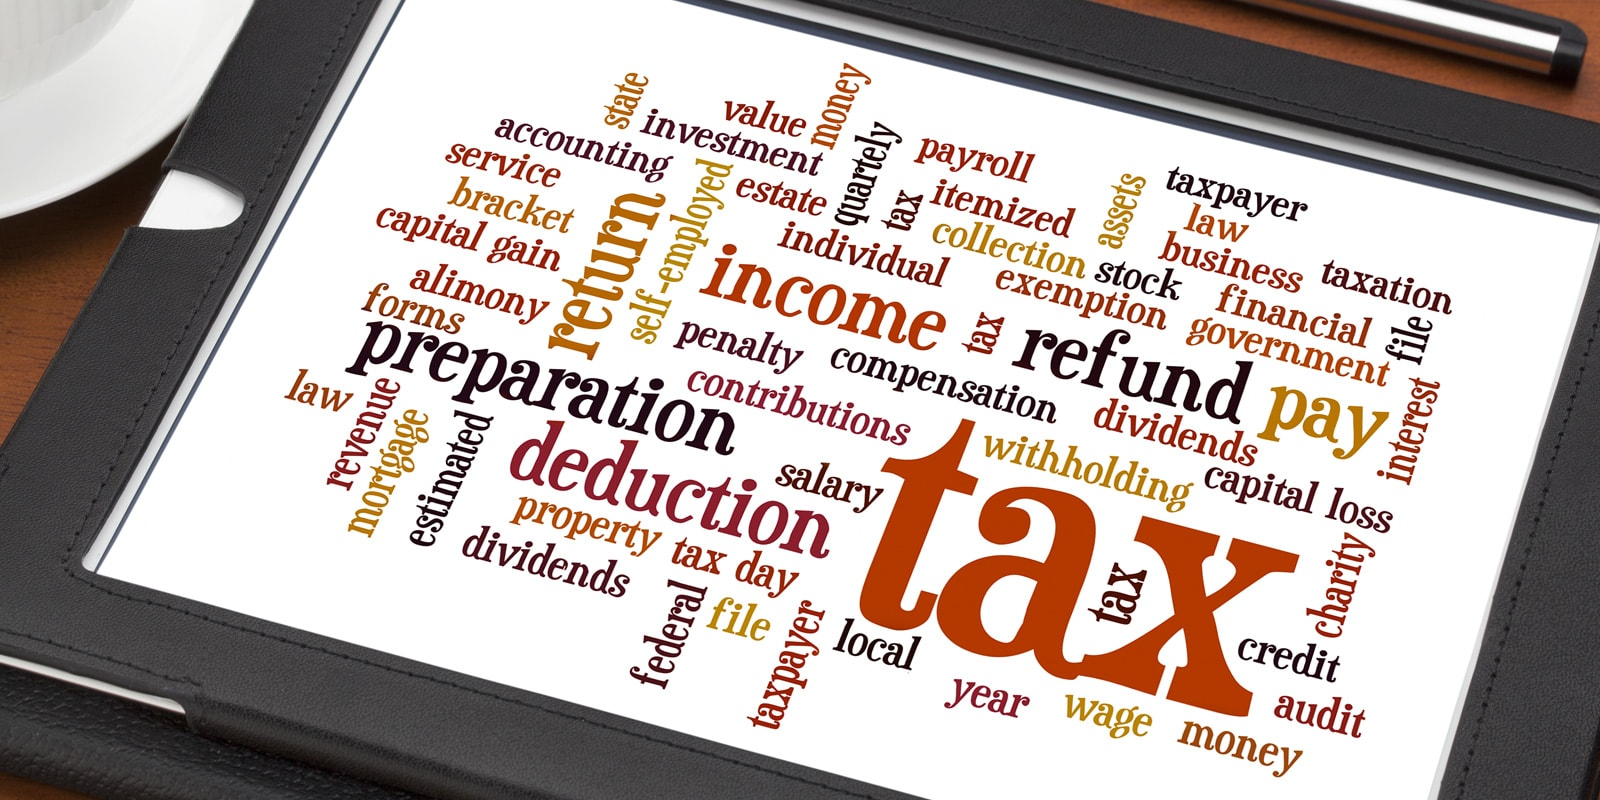 Noble Accounting Tax Servces